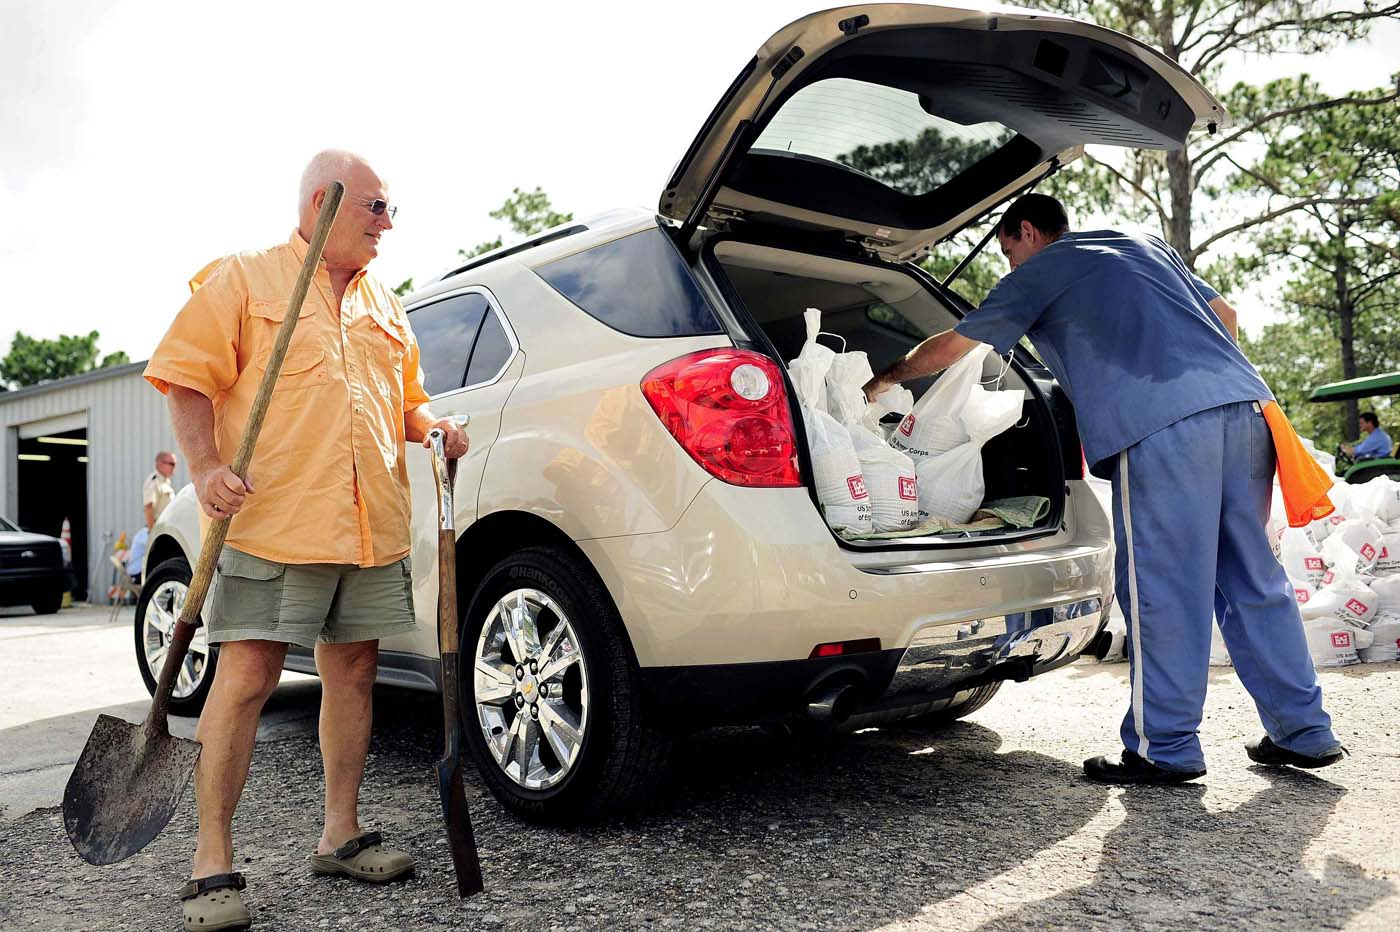 Bob Darr (L) pulls out his shovels to make room in his trunk, allowing an inmate from the Florida Department of Corrections to load sandbags into his car as he prepares to fight back the rising water associated with Tropical Storm Debby in Homosassa, Florida, June 26, 2012. (Brian Blanco/Reuters)